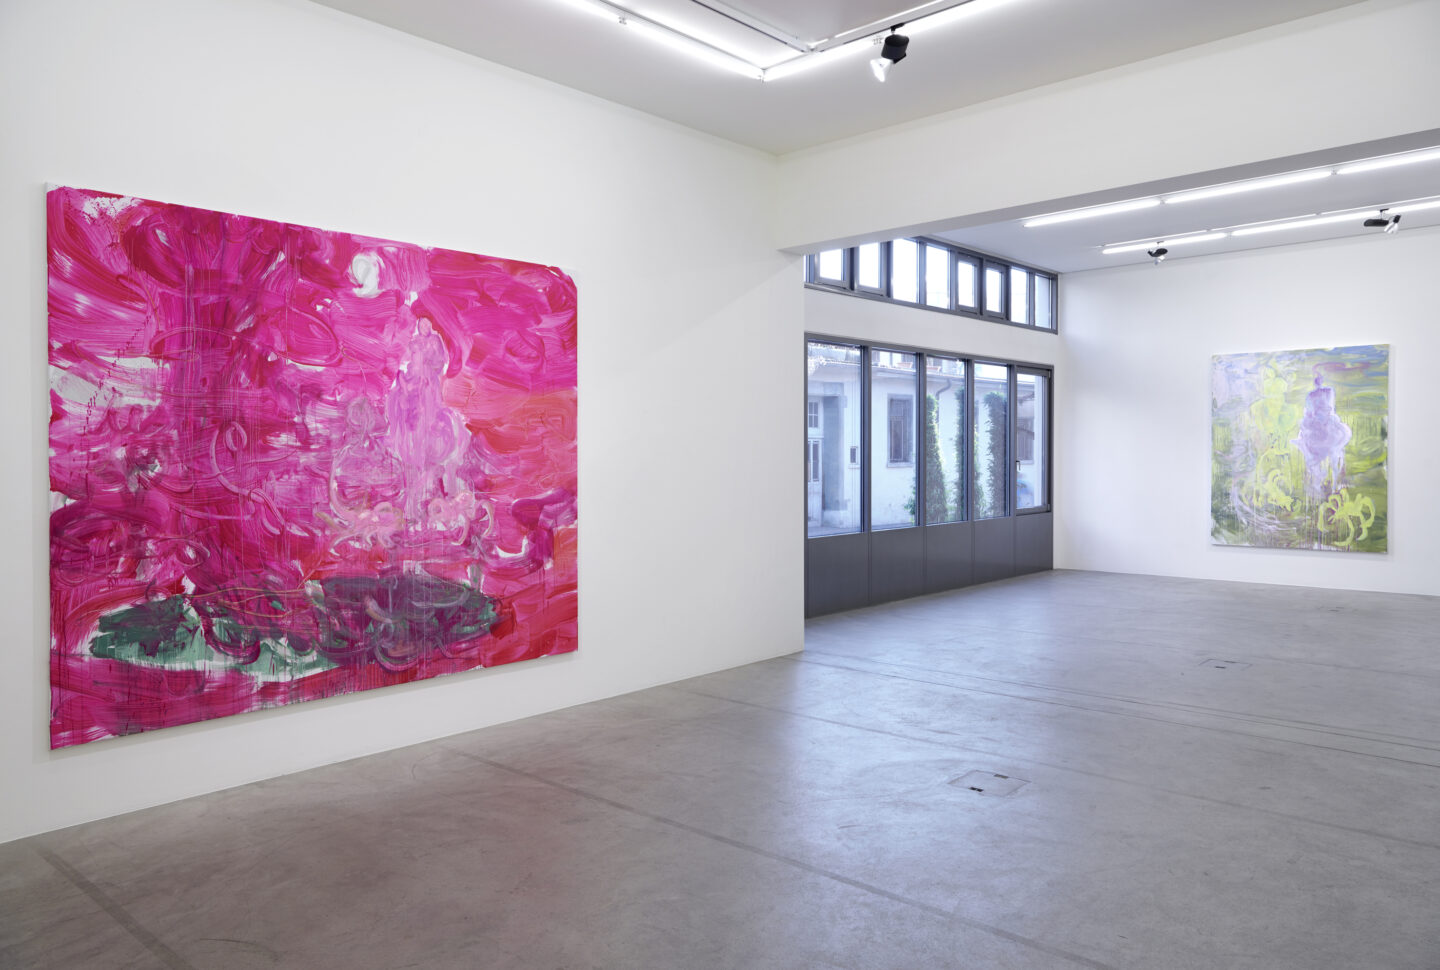 Exhibition View Rebekka Steiger Solshow «wild is the wind» at Galerie Urs Meile, Luzern / Courtesy: the artist and Galerie Urs Meile